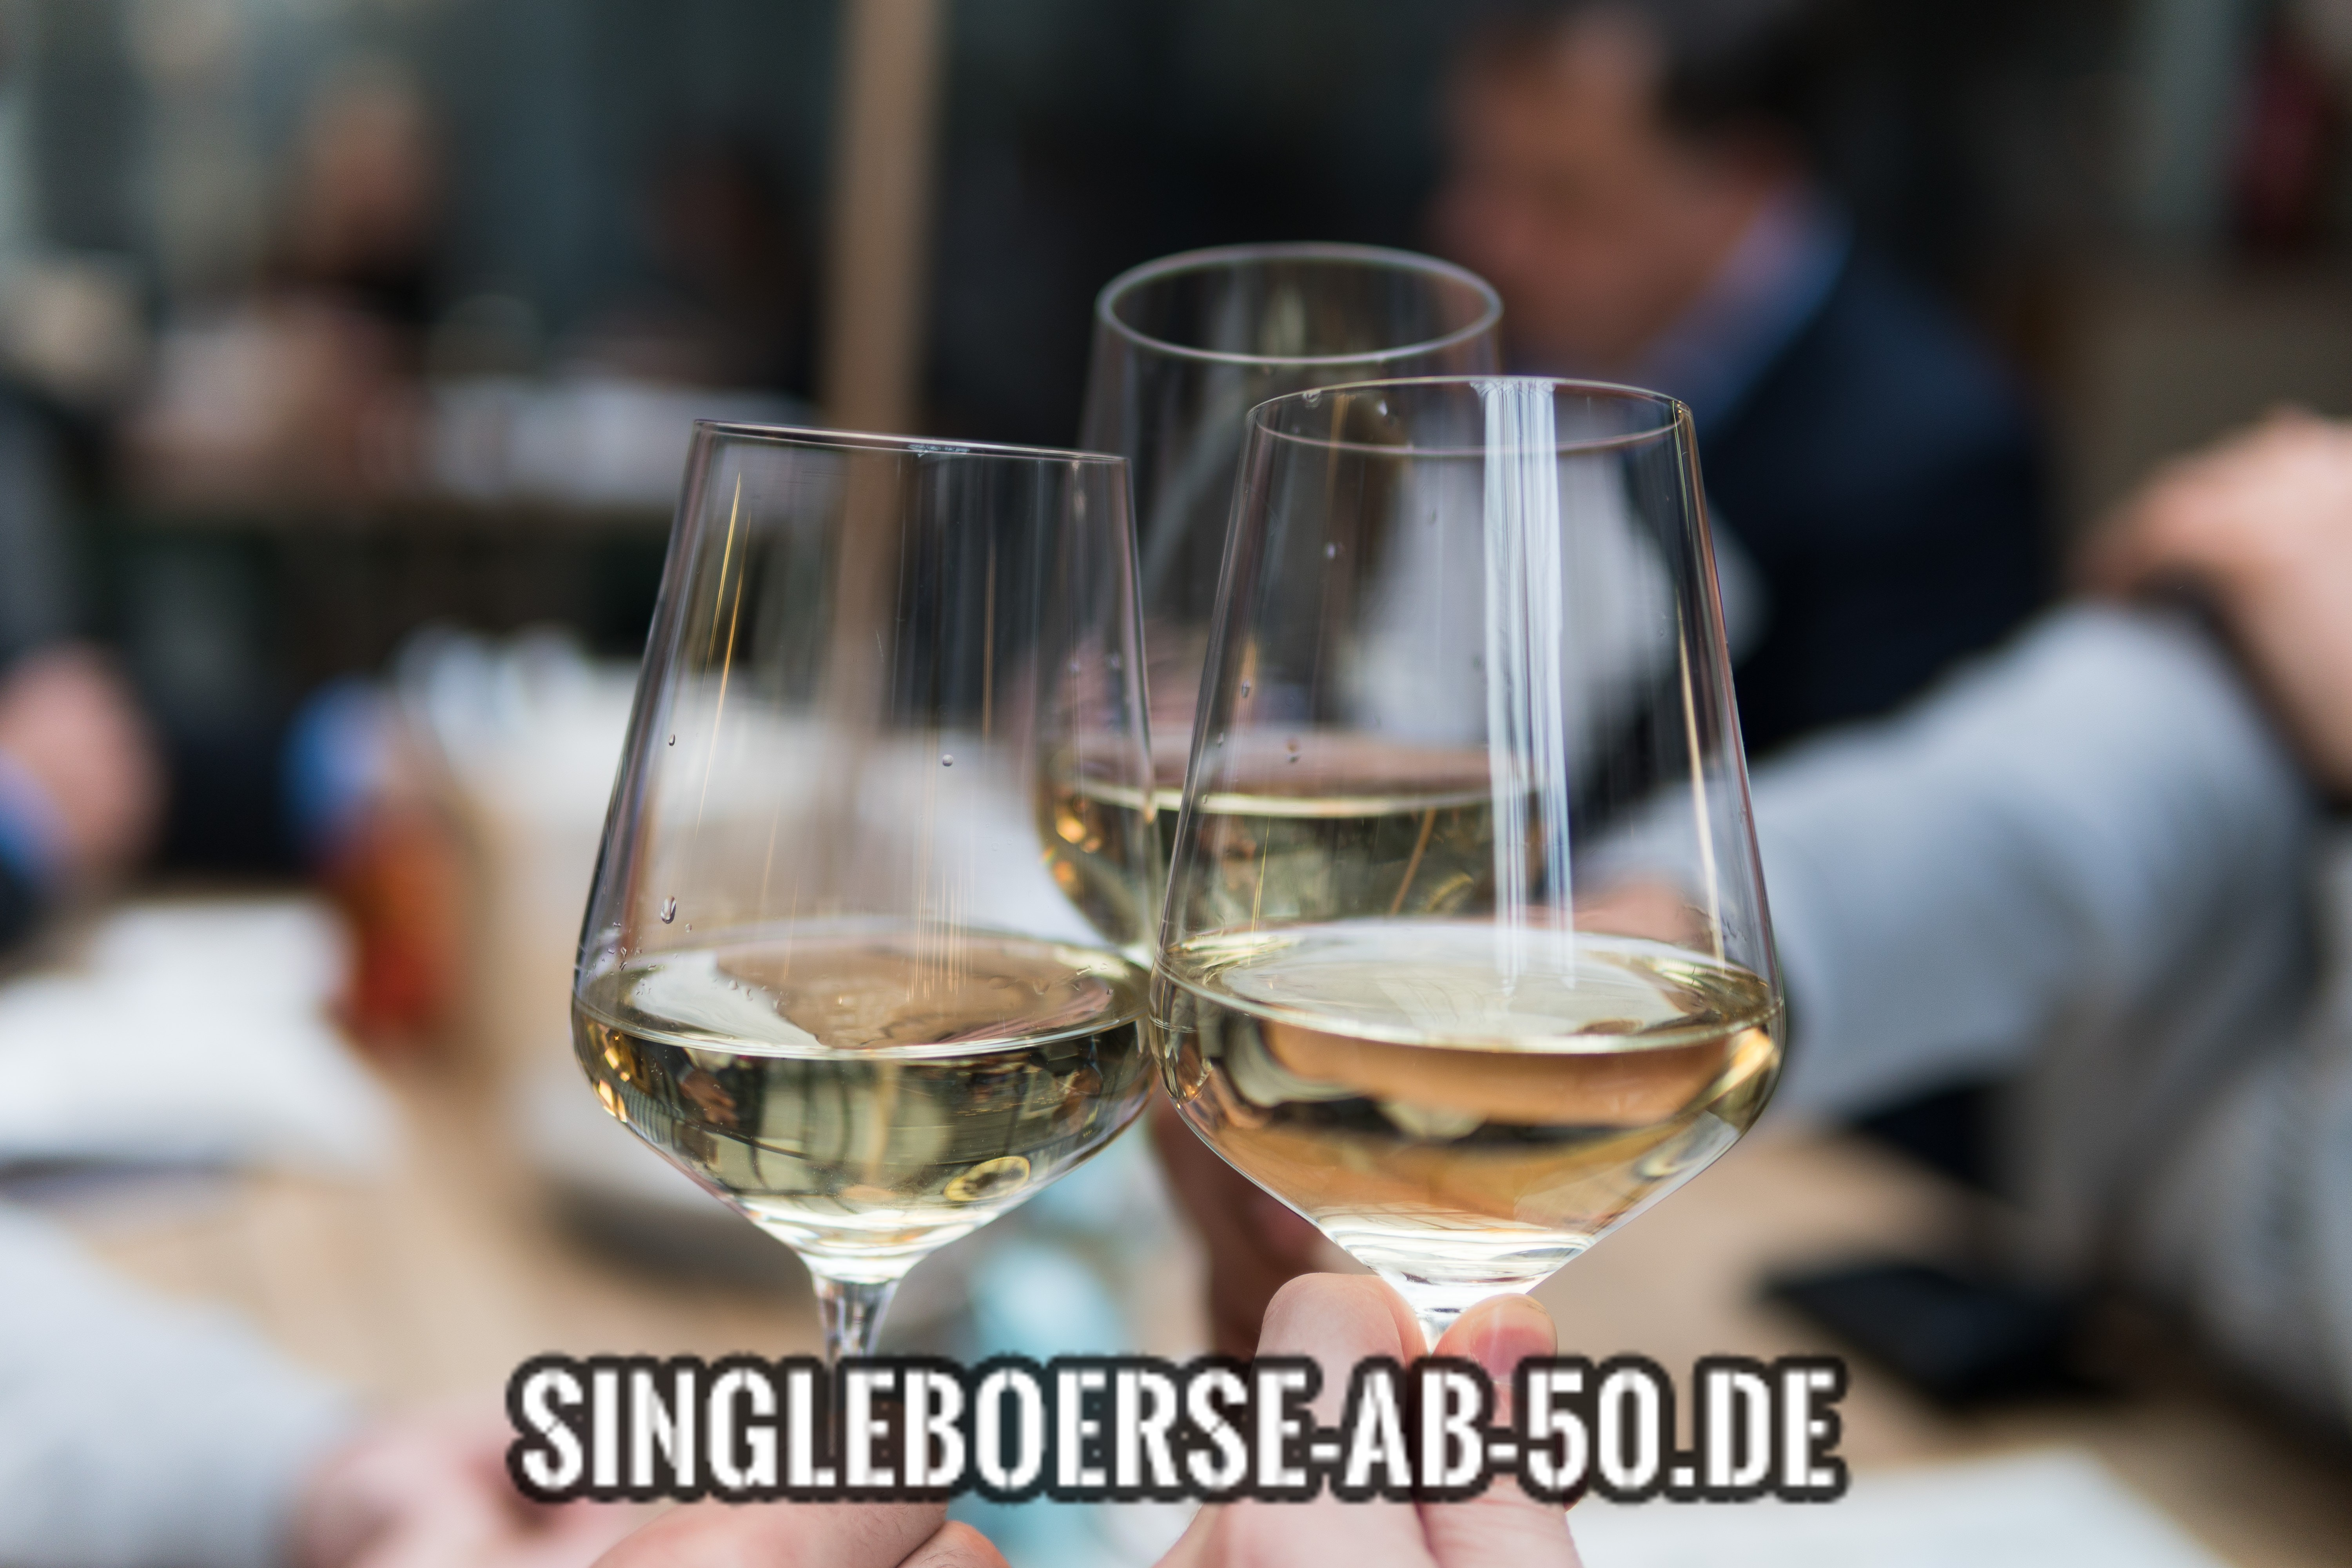 single party 50+